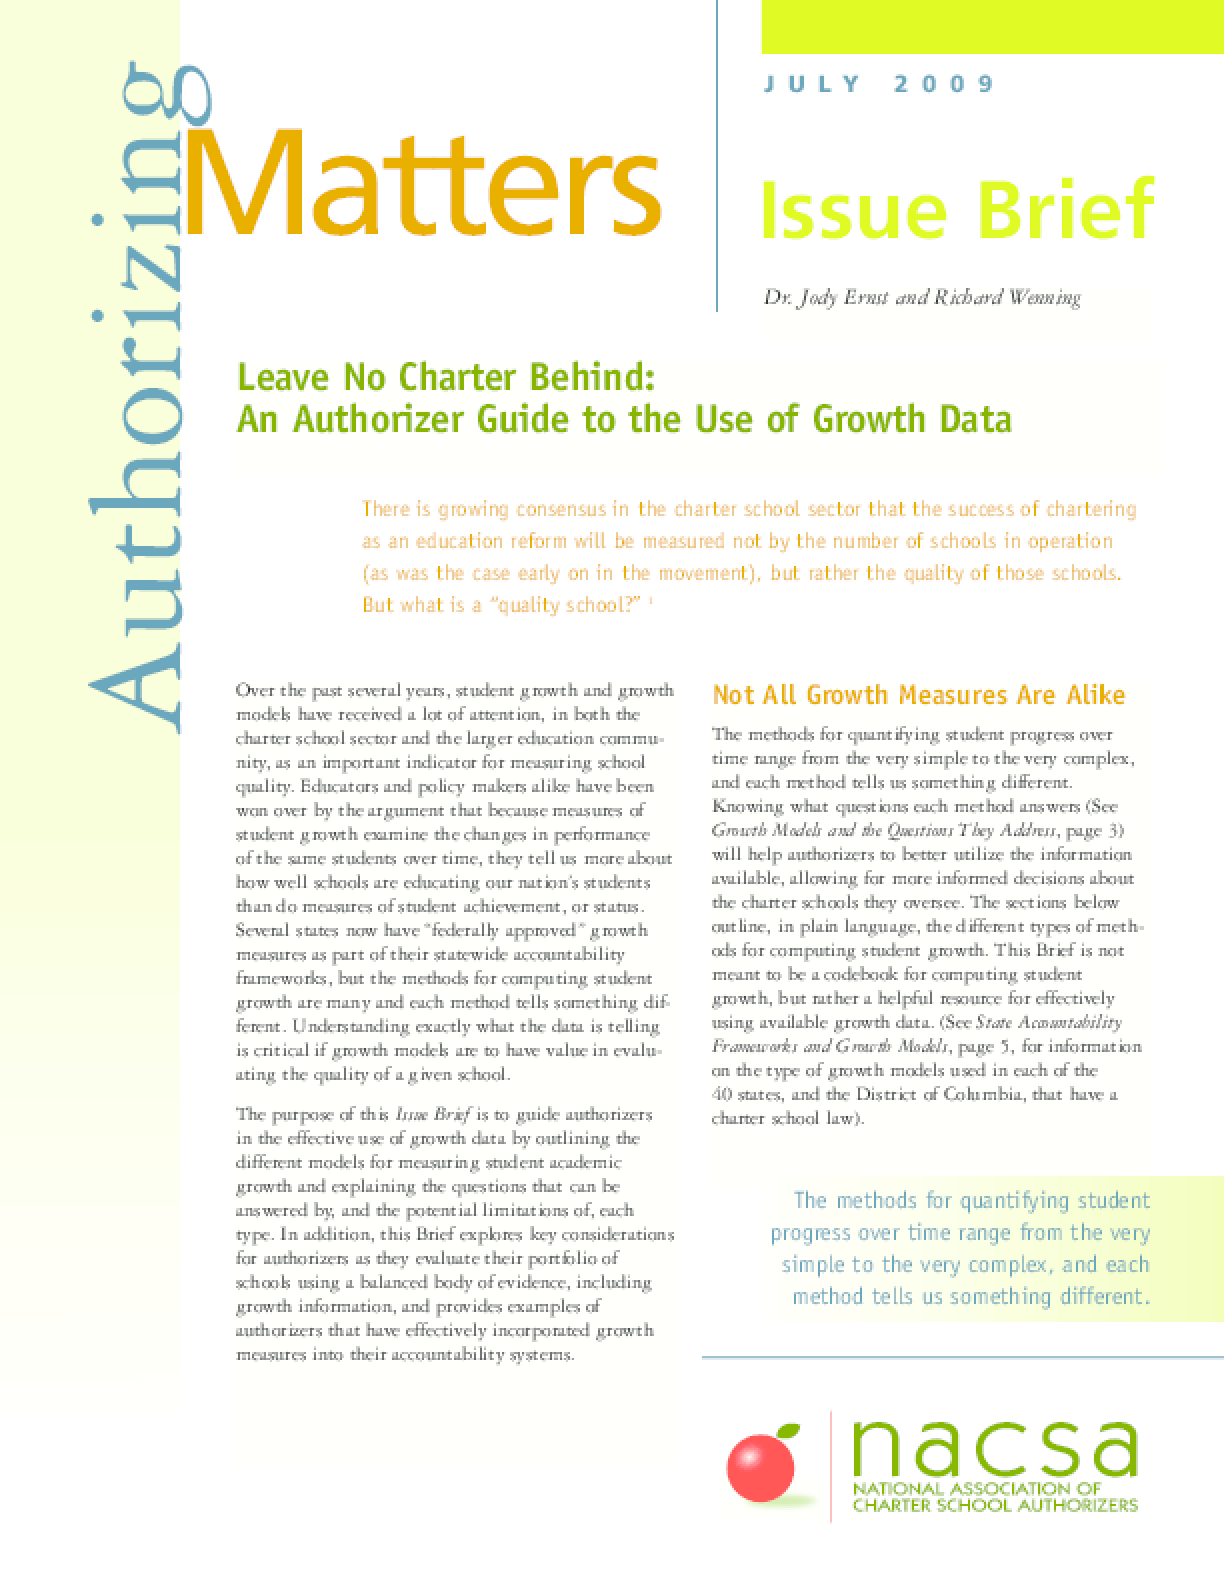 Leave No Charter Behind: An Authorizer Guide to the Use of Growth Data